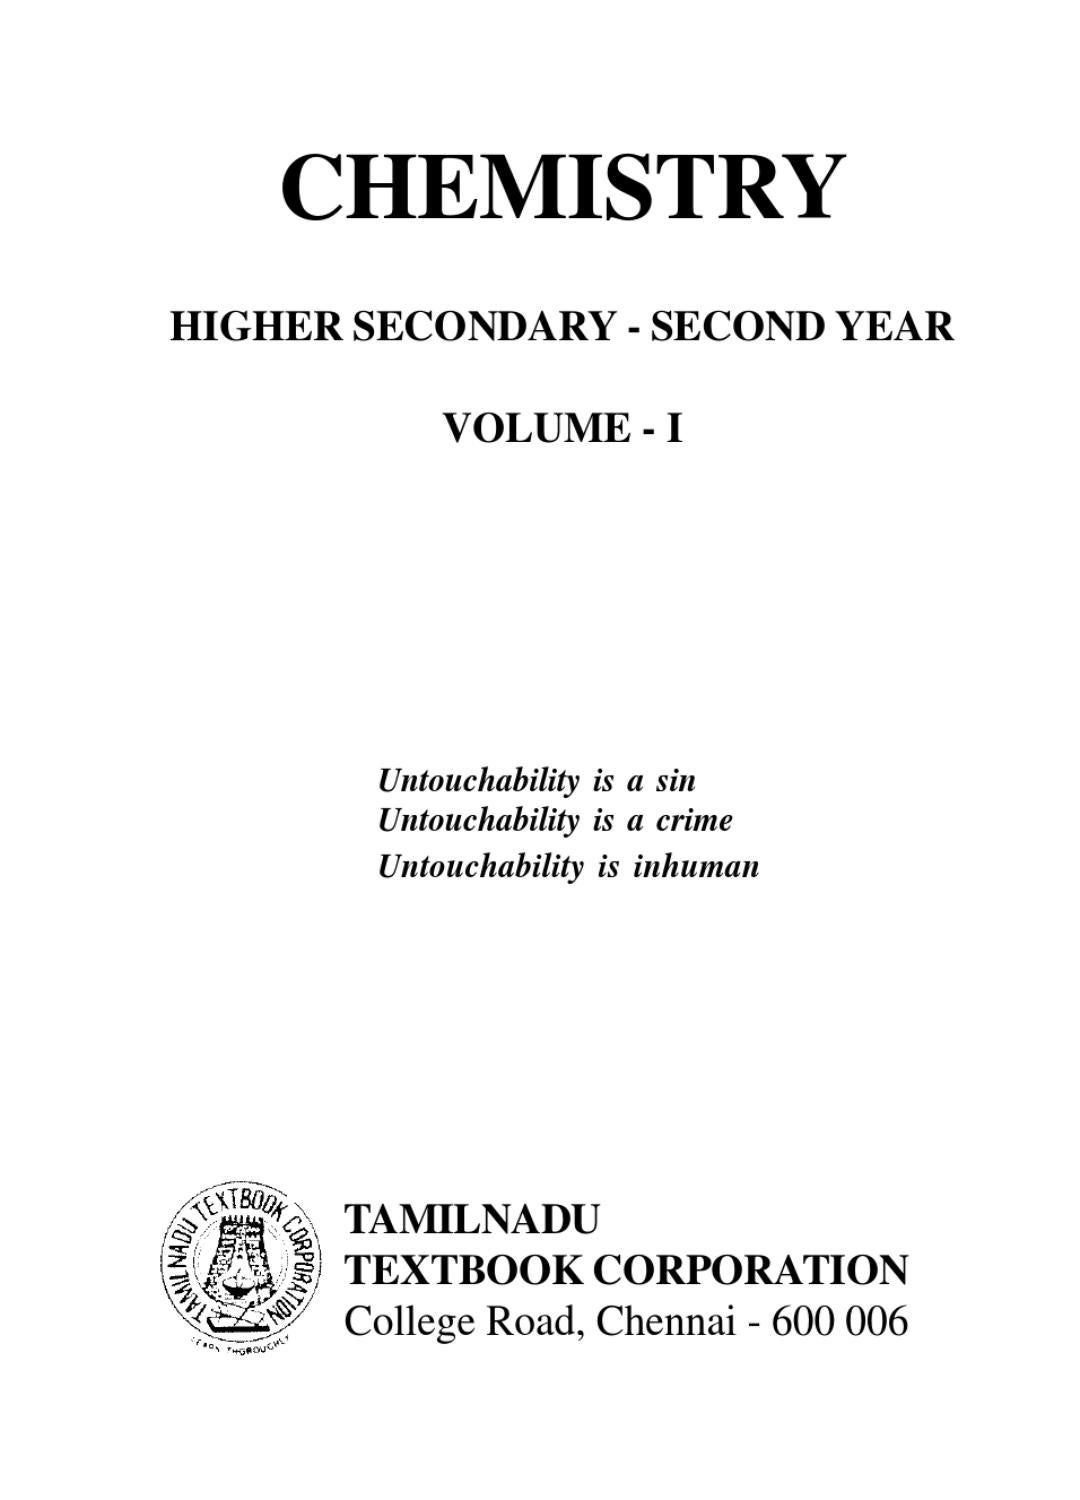 Bansal classes chemistry study material for iit jee by S.Dharmaraj ...